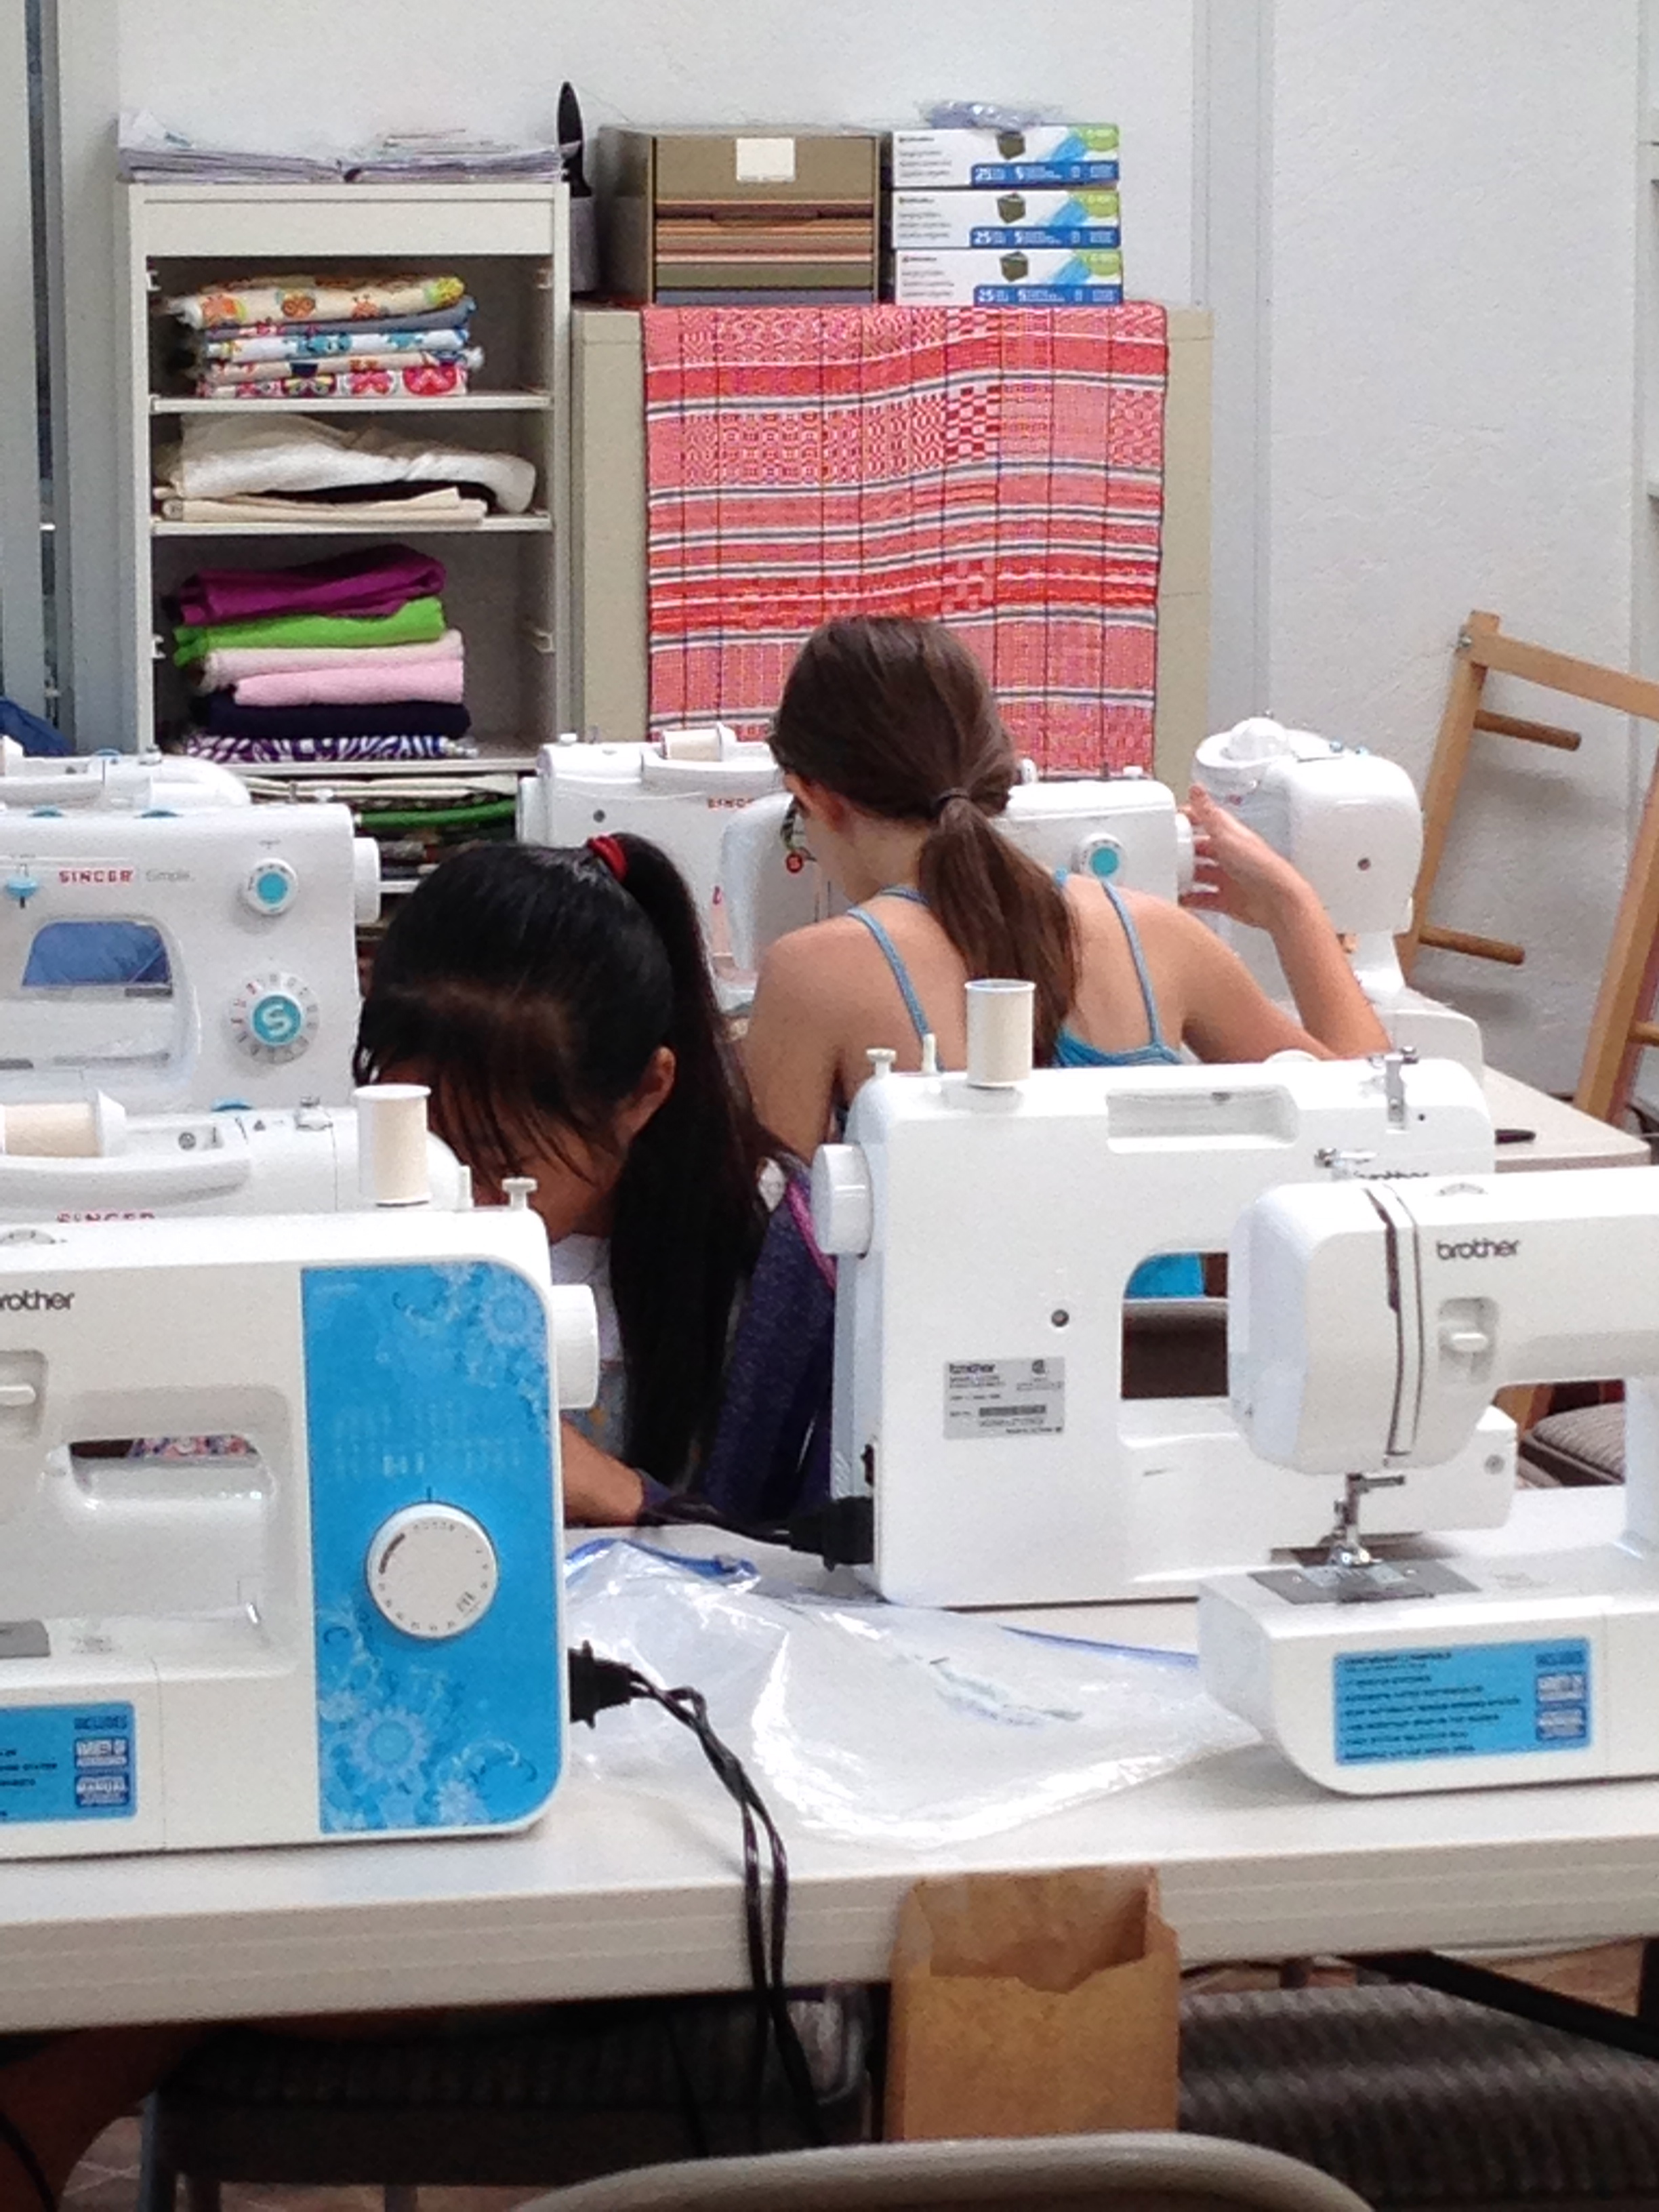 Sewing, sewing, sewing.